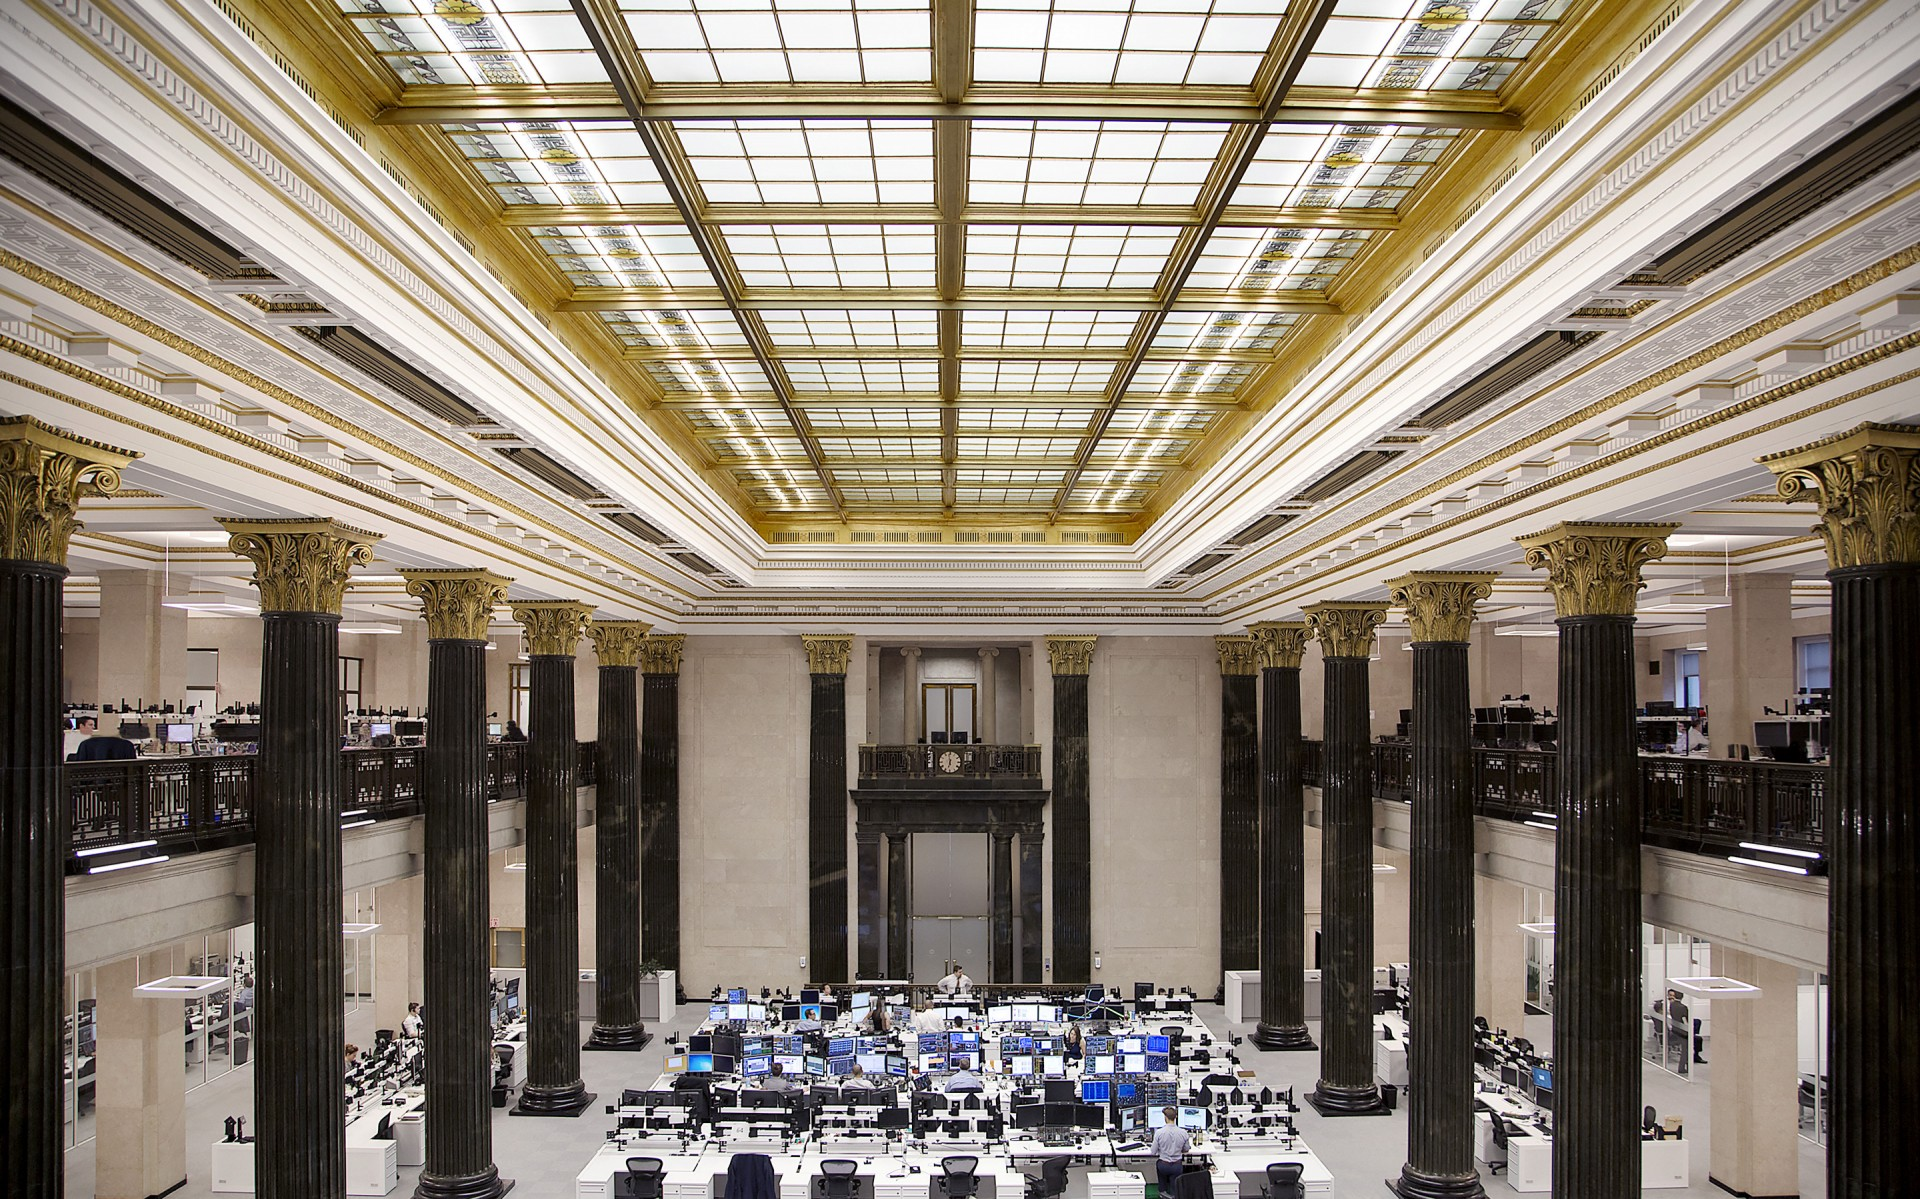 The National Bank of Canada's Montreal headquarters possesses a Grand Hall that is an ornate masterpiece.  – Sébastien Racicot